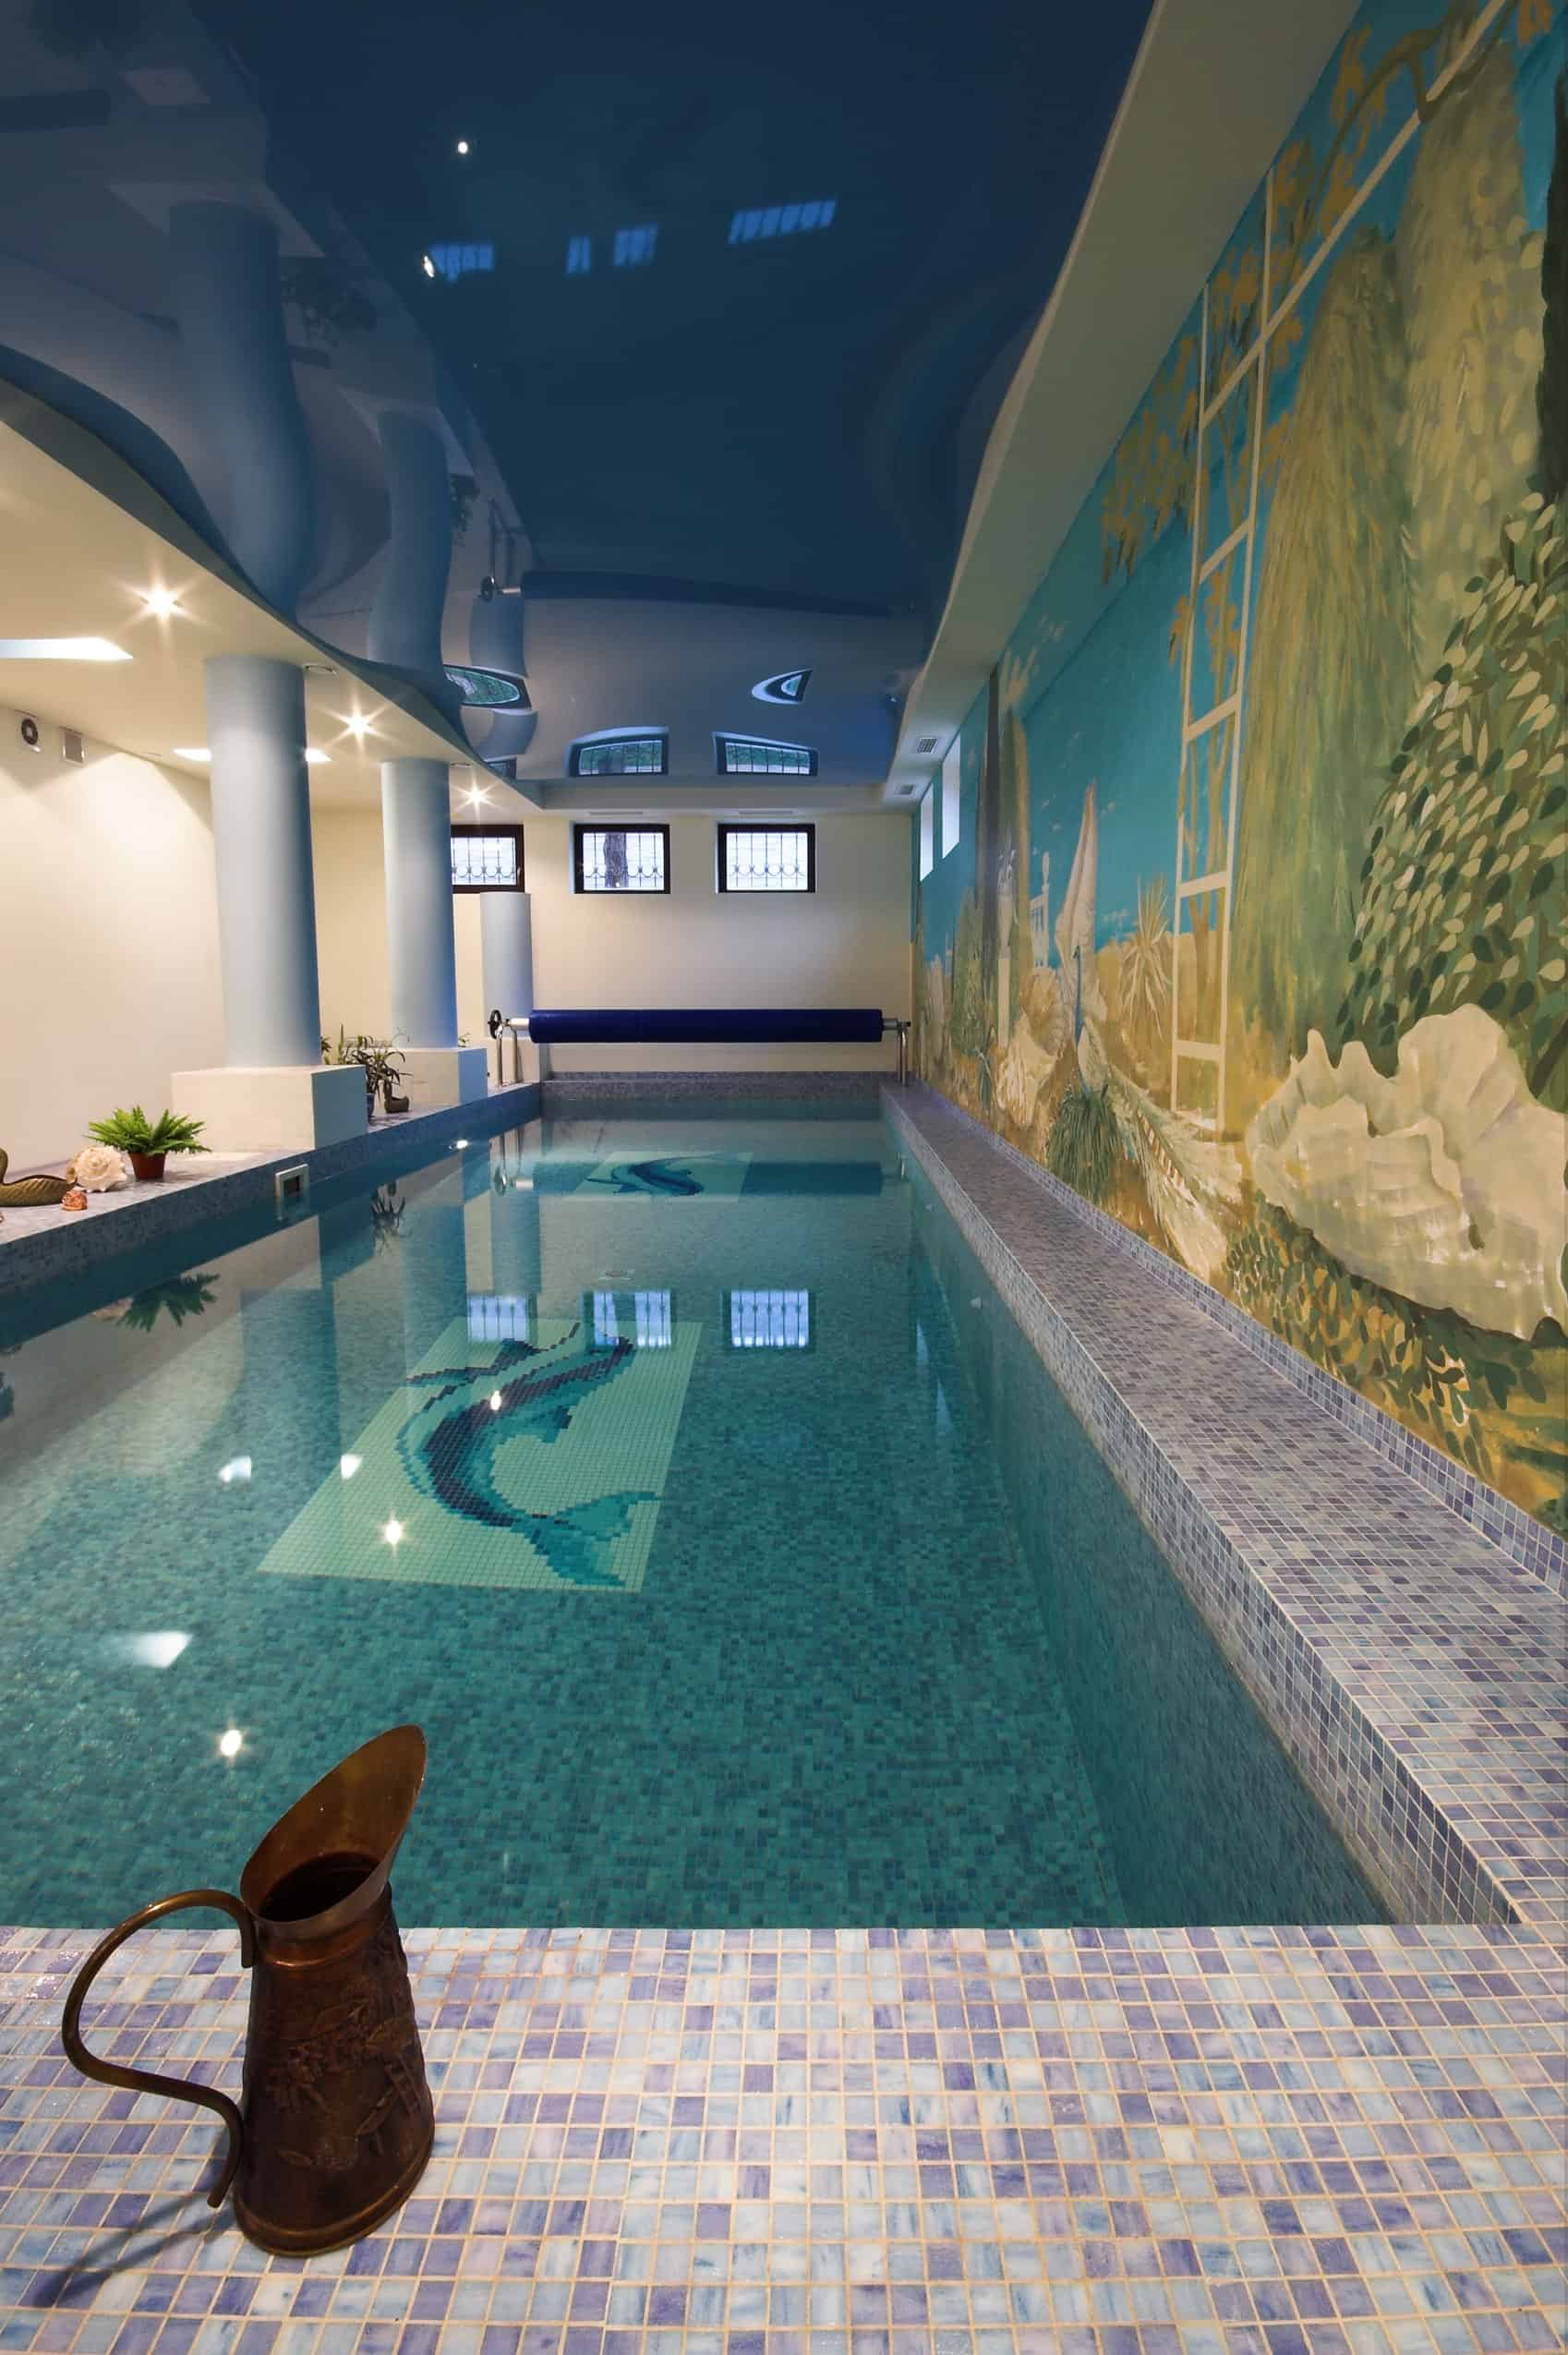 This indoor pool has a huge covered wall at one side and is beautifully painted all over, and pillars on the other side, giving it a very imperial look.